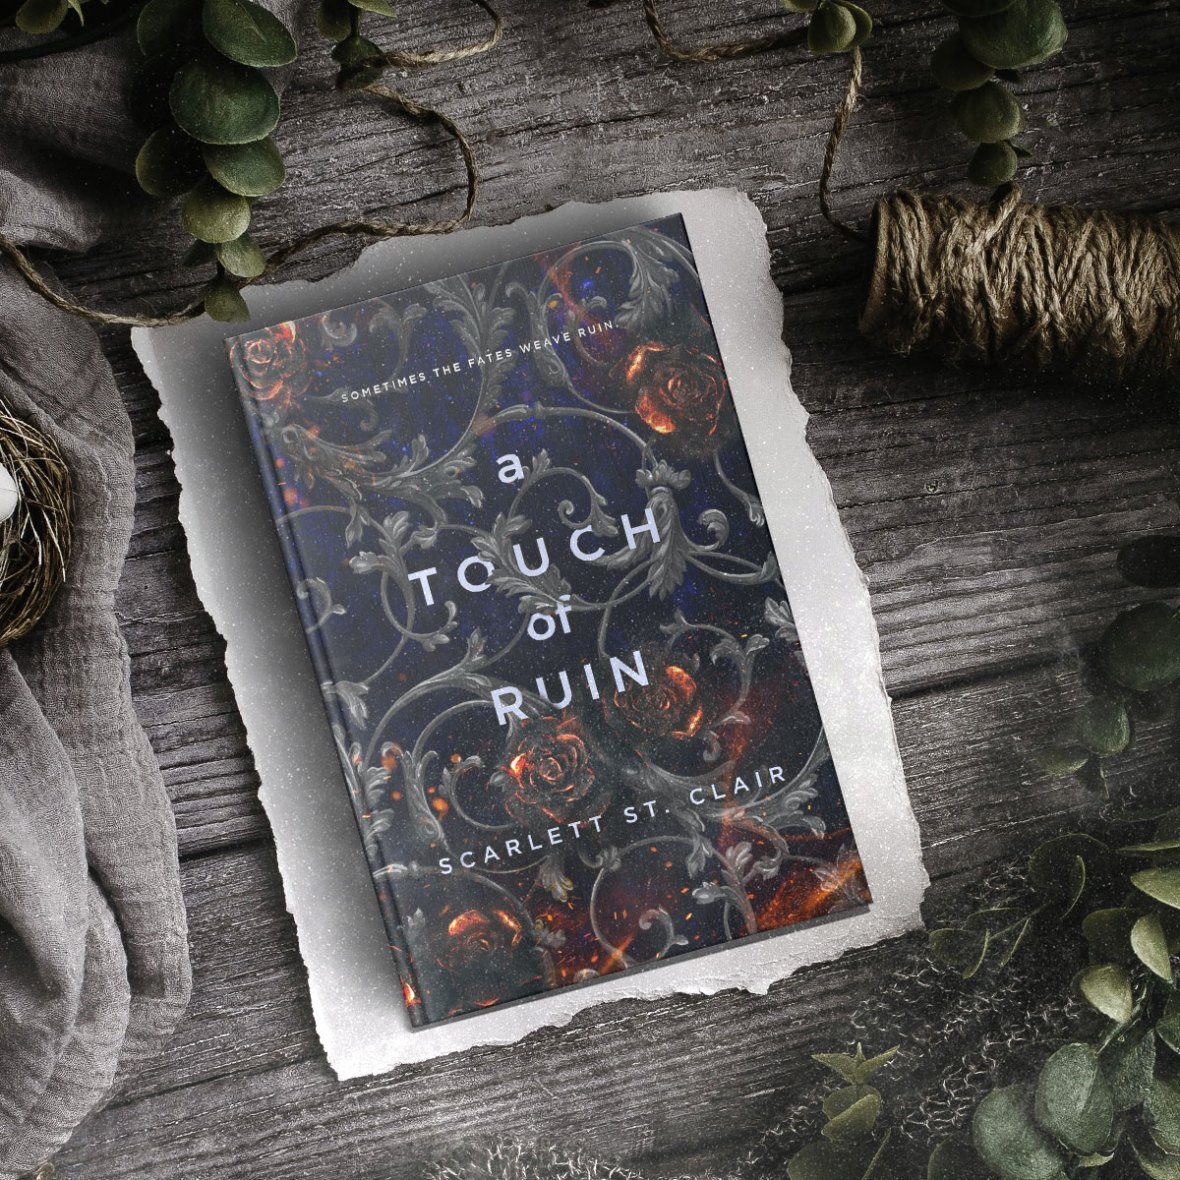 A Touch of Ruin by Scarlett St. Clair